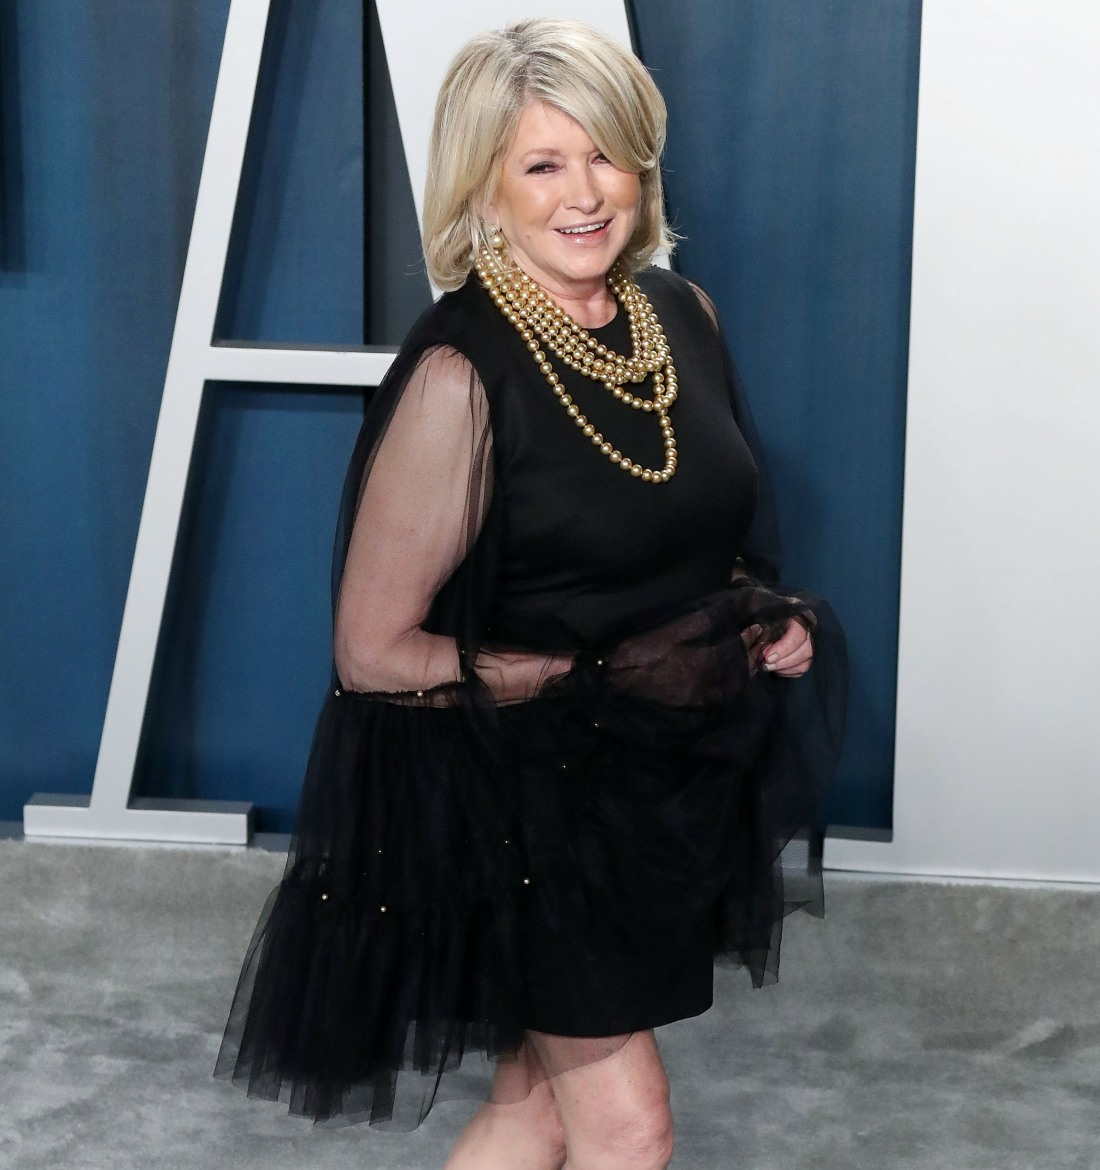 Martha Stewart arrives at the 2020 Vanity Fair Oscar Party held at the Wallis Annenberg Center for t...